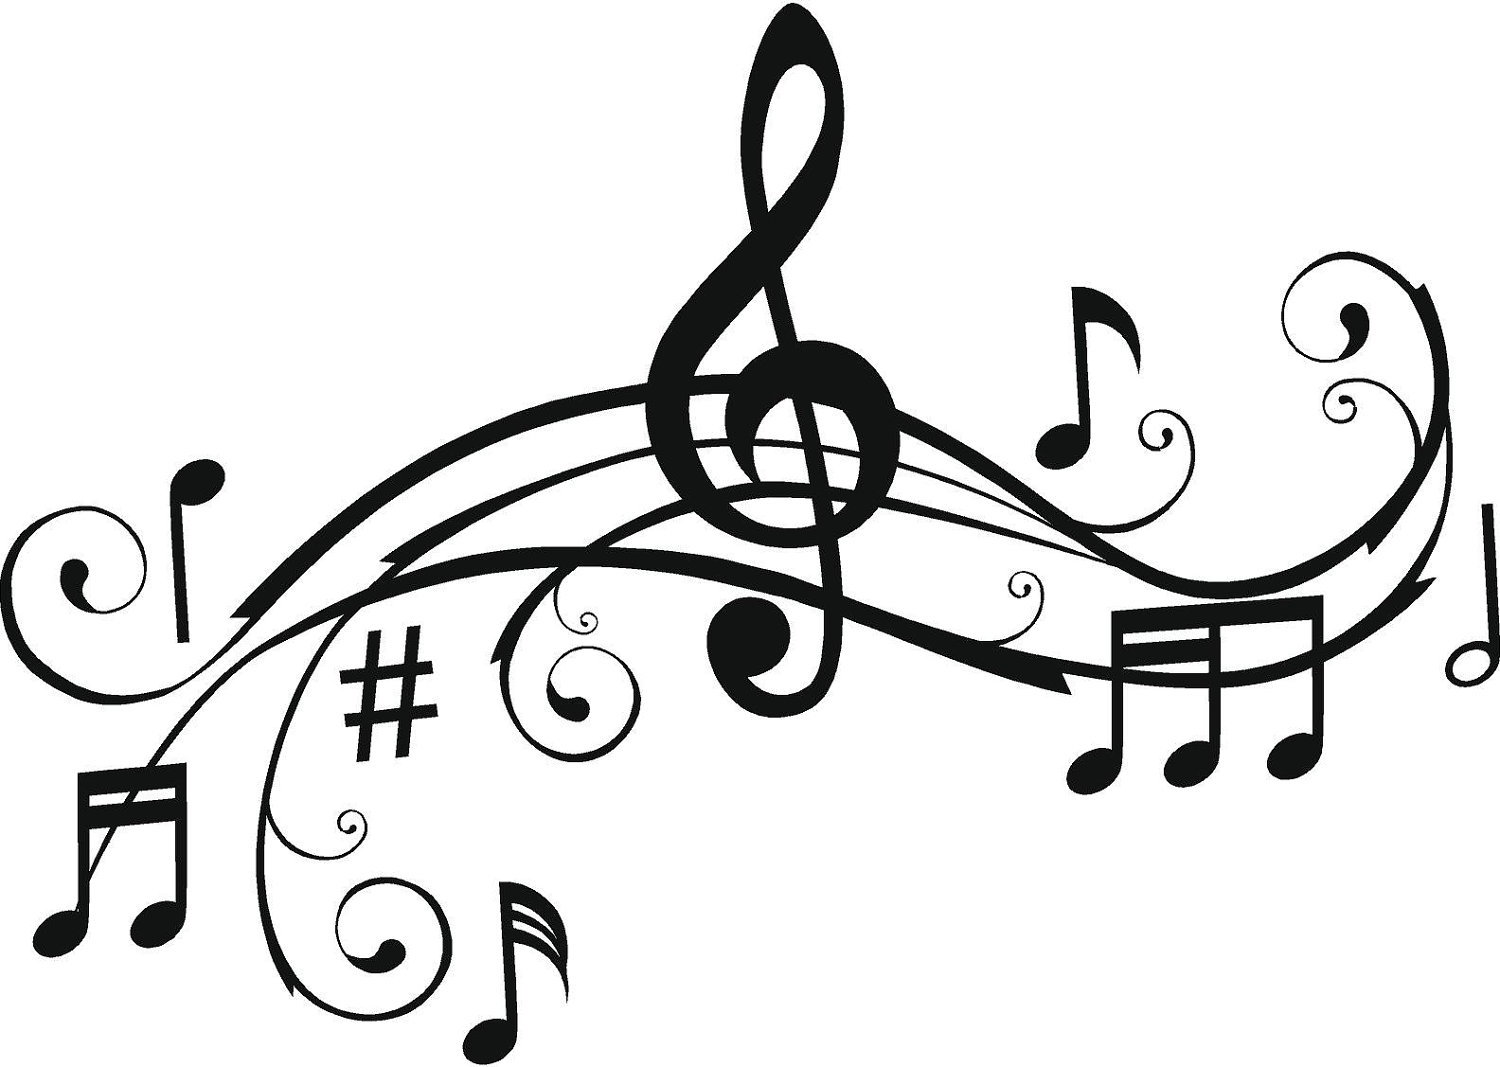 Music Notes Clipart Black And White-music notes clipart black and white-10